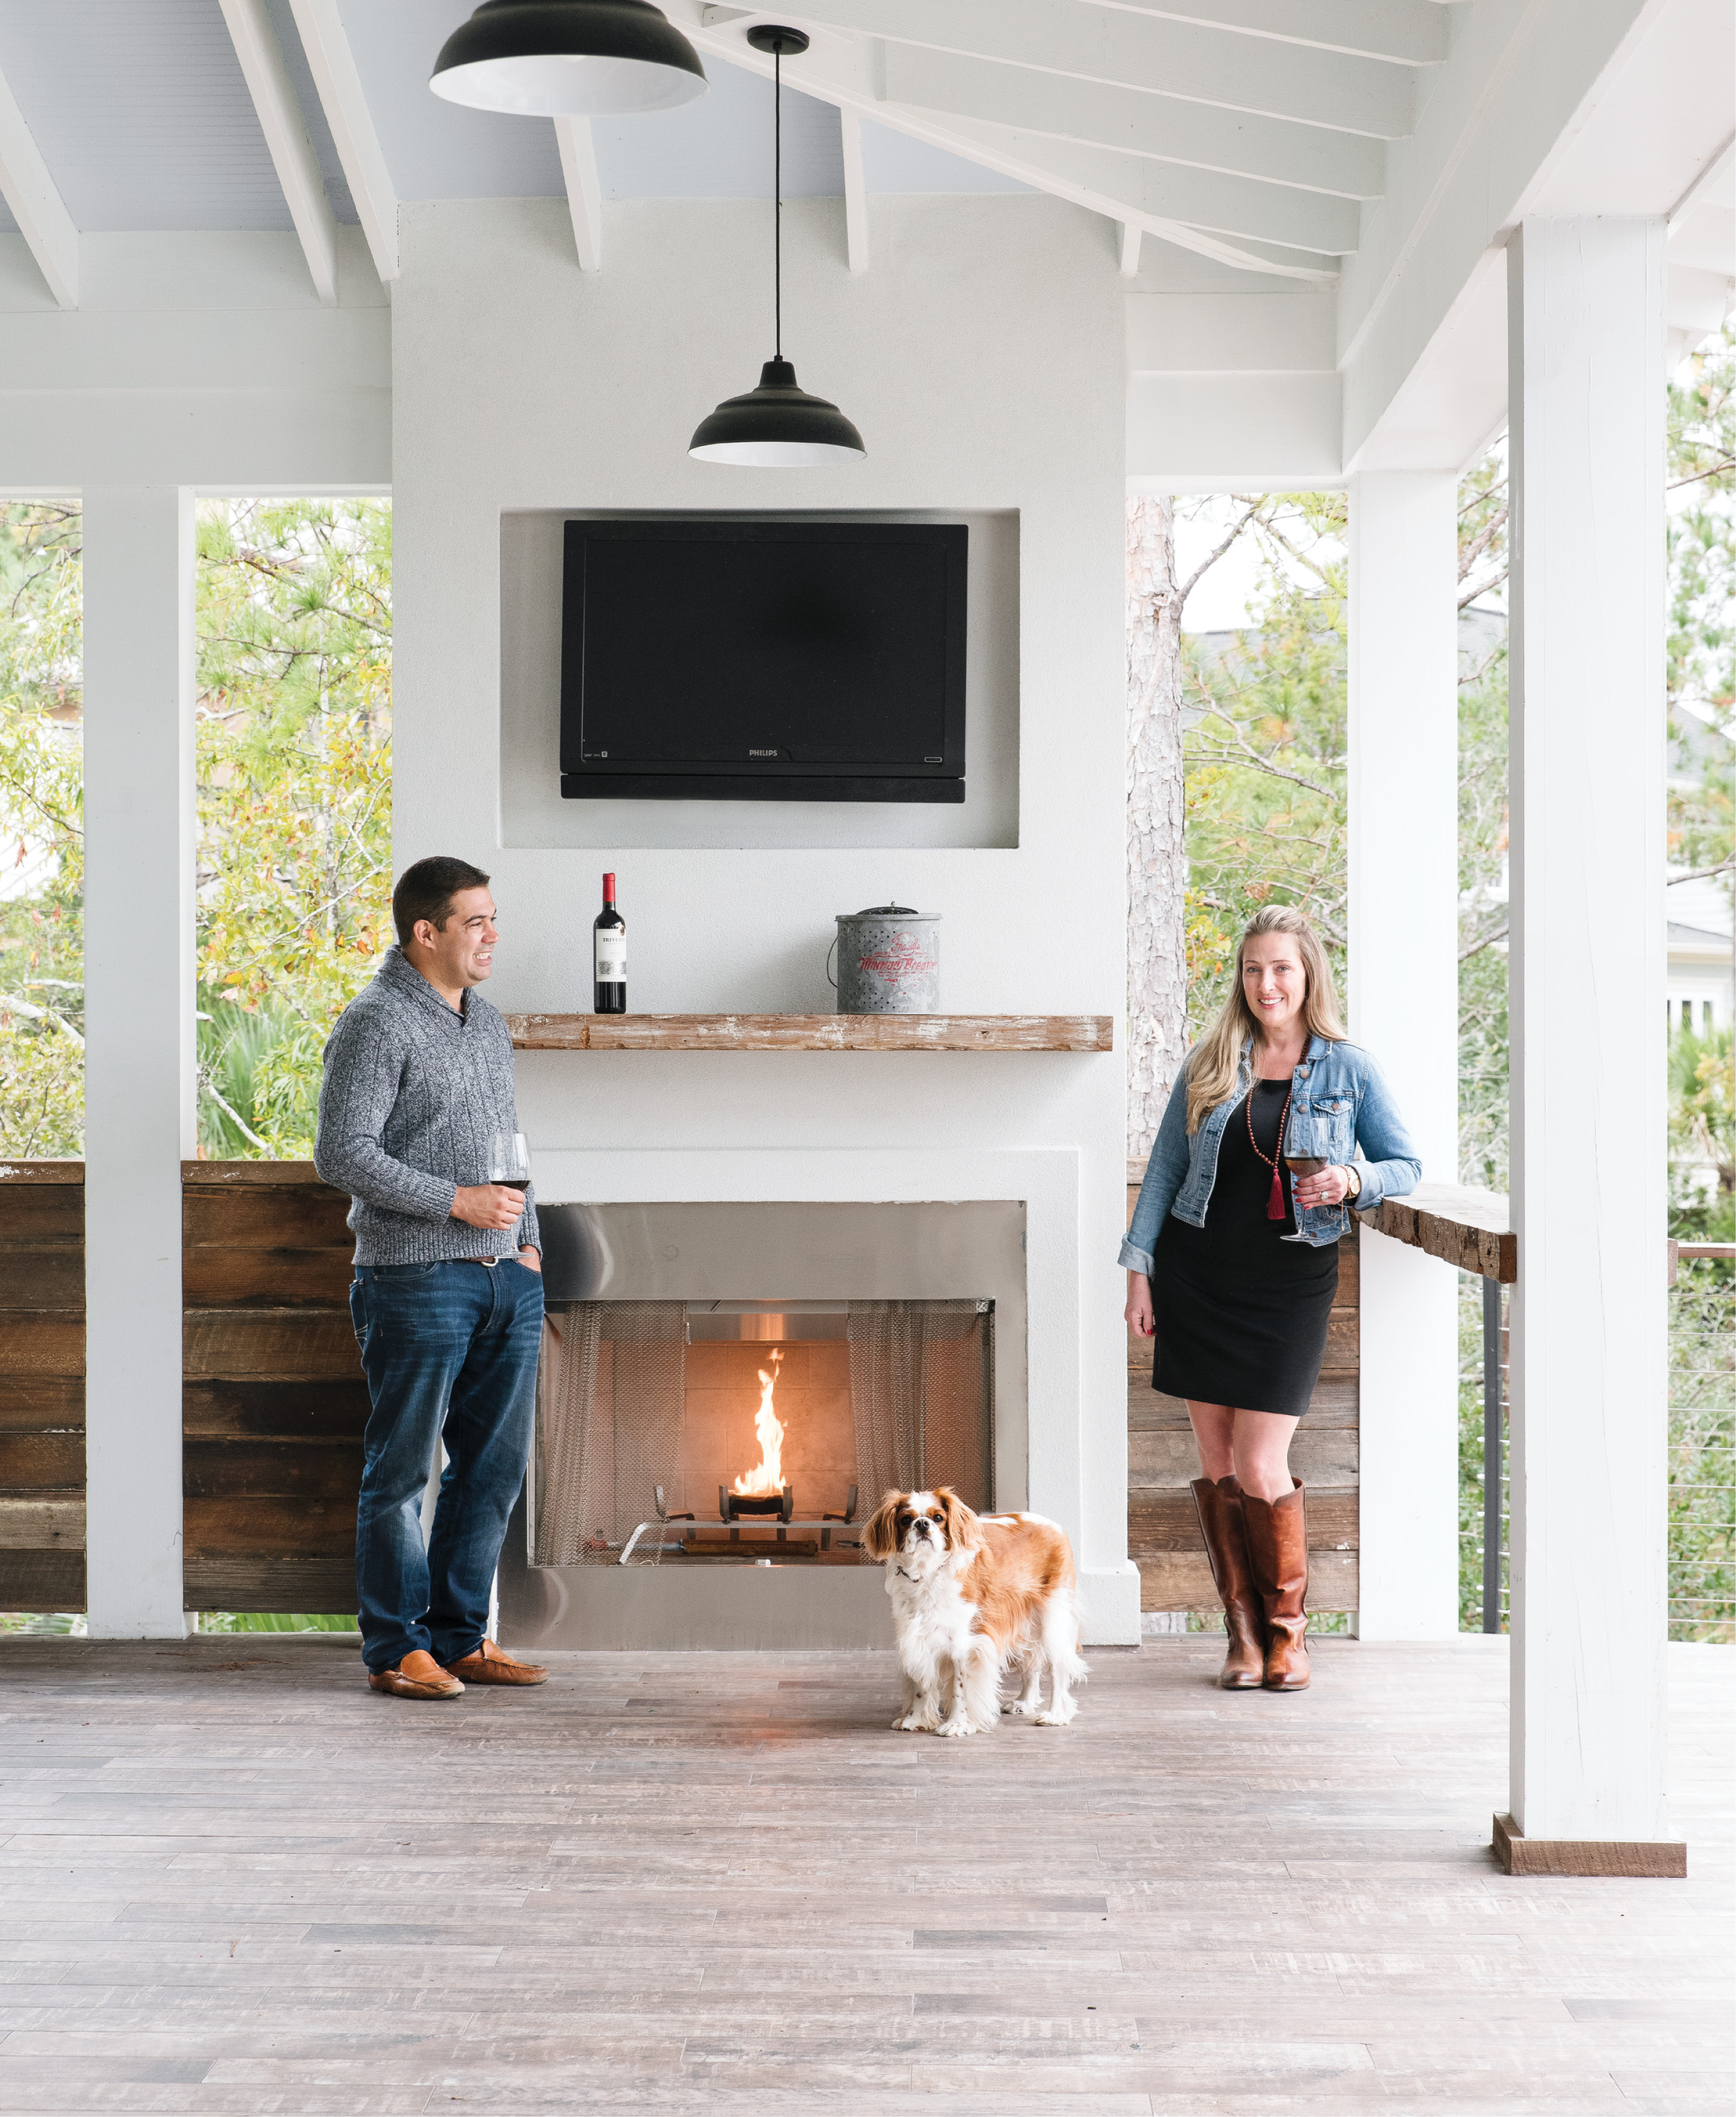 Cooler temps don't keep Melissa and Valmar Nunes and their adorable pup, Mason, cooped up indoors. The couple designed their RiverTowne abode—complete with a marsh-front pool, open-air kitchen, and this alfresco fireplace—for outdoor entertaining year-round.